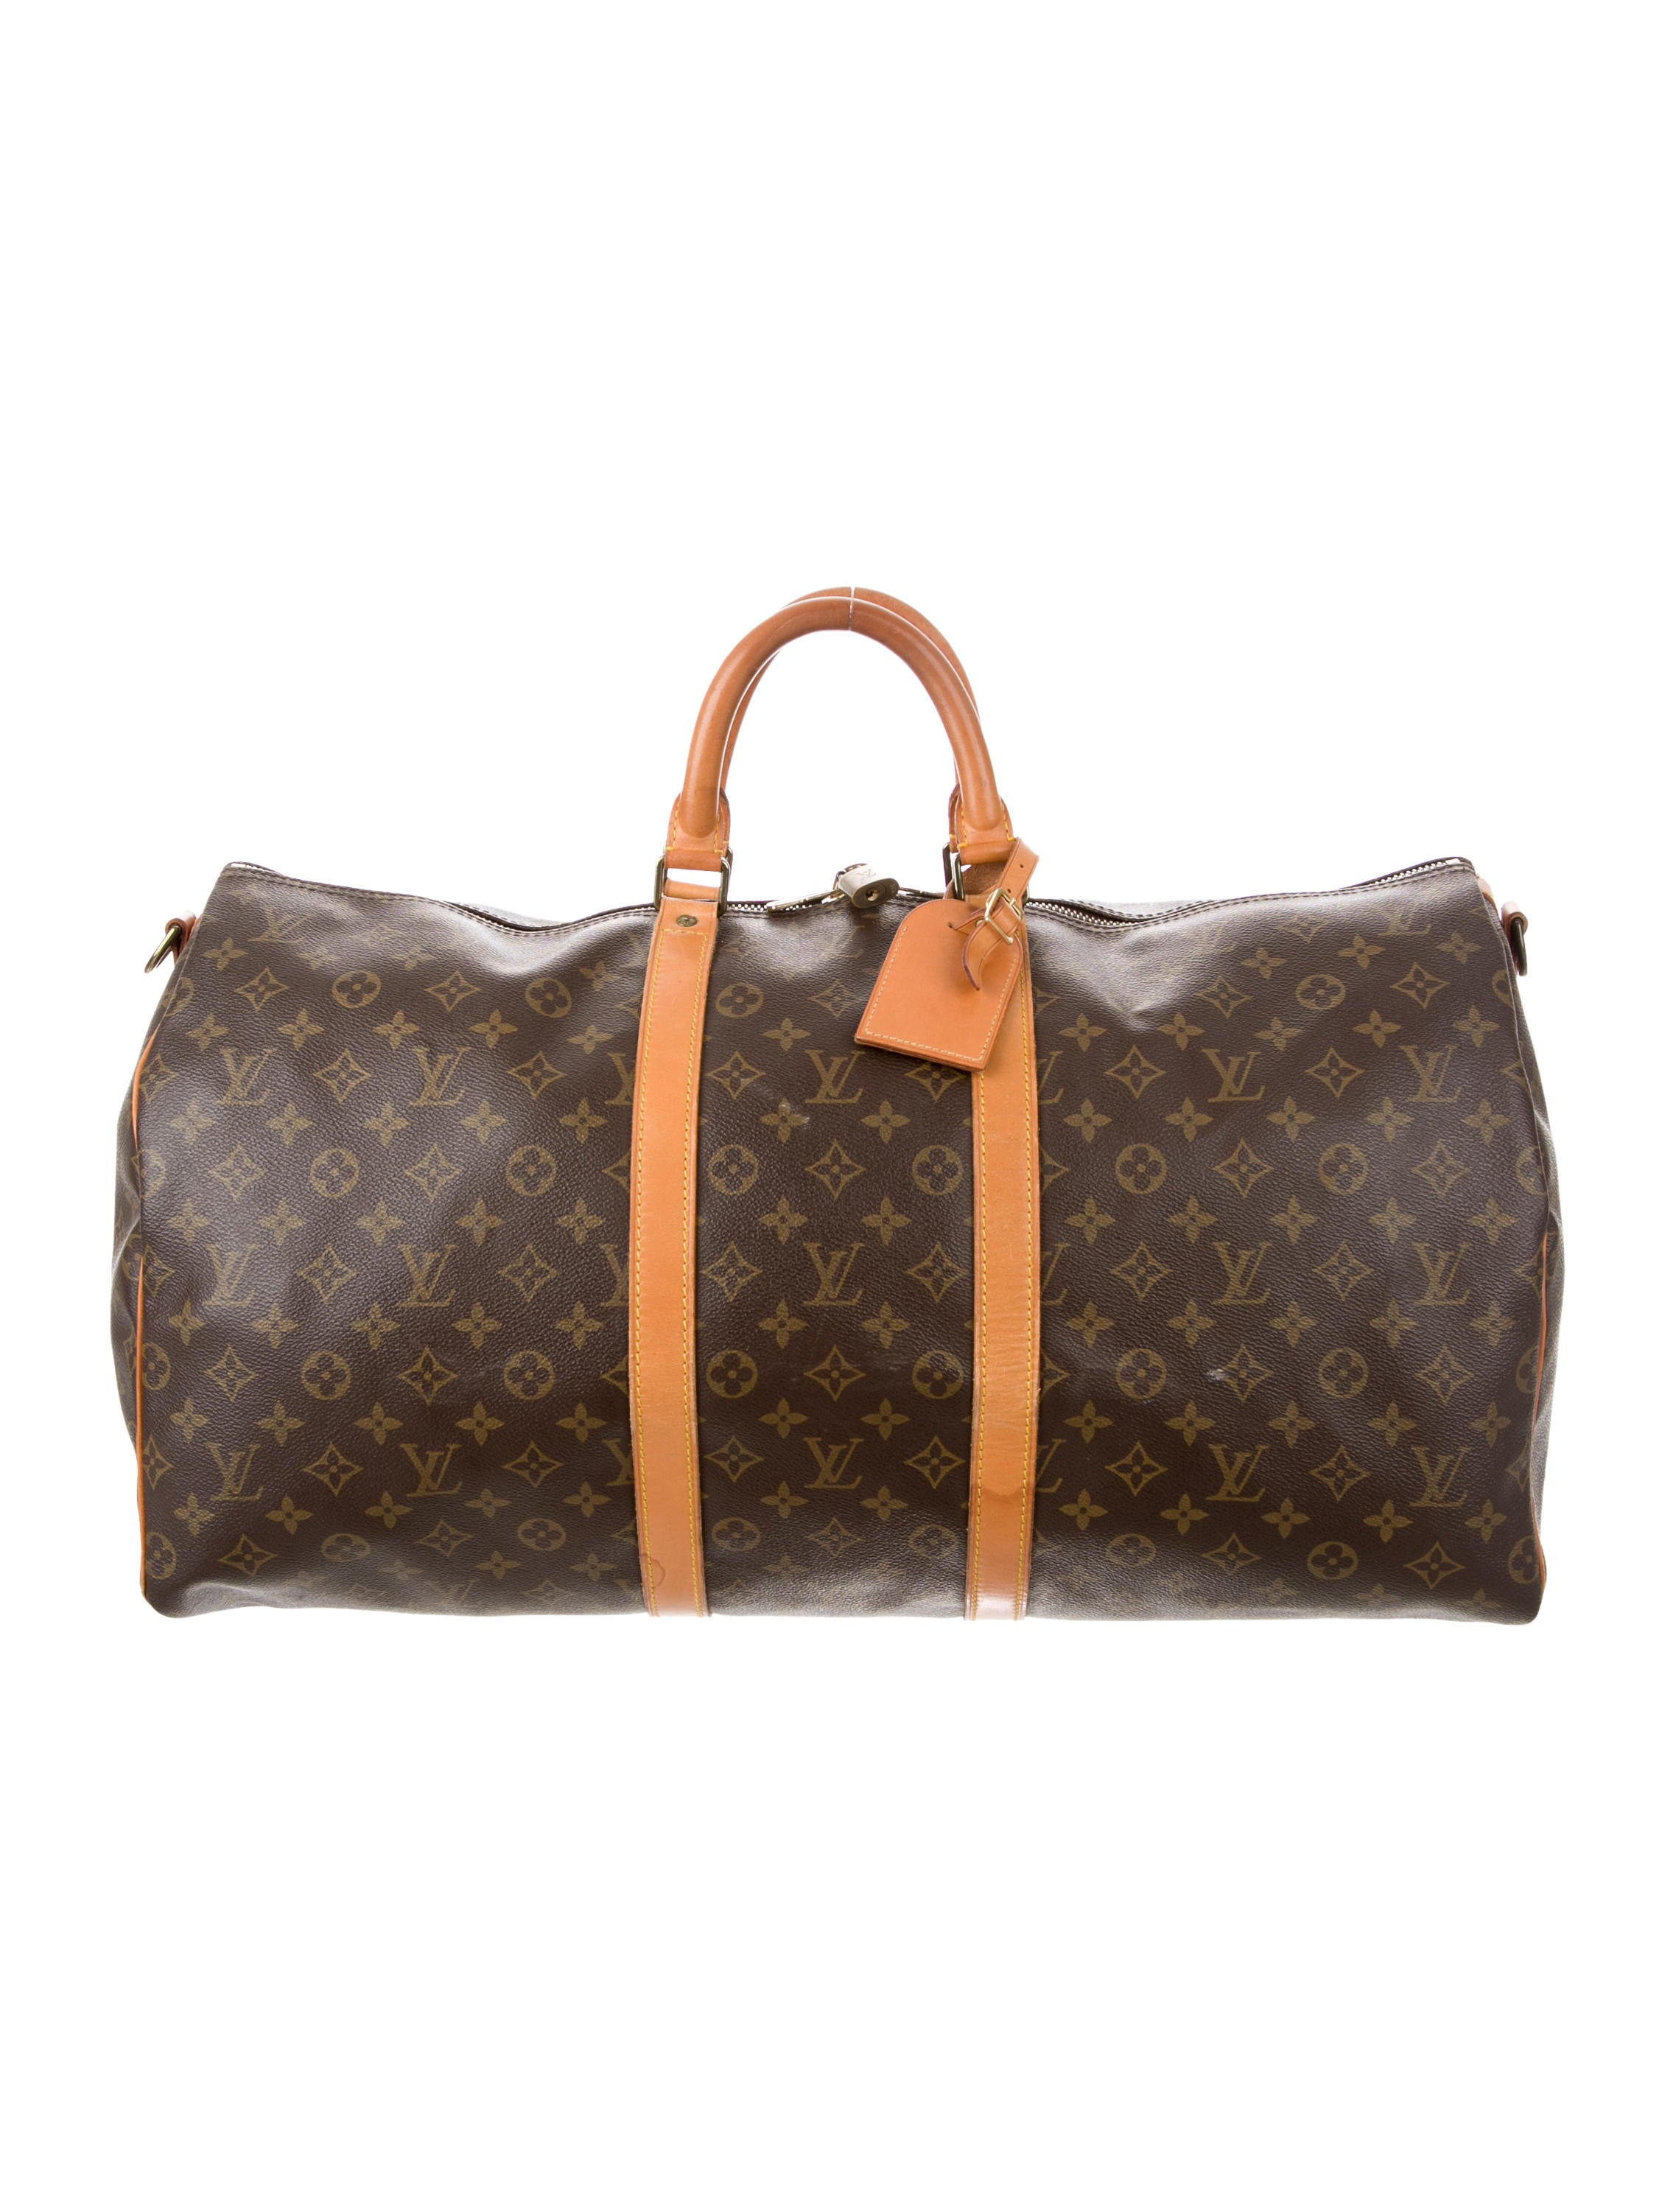 louis vuitton monogram keepall 55 bags lou119356 the realreal. Black Bedroom Furniture Sets. Home Design Ideas